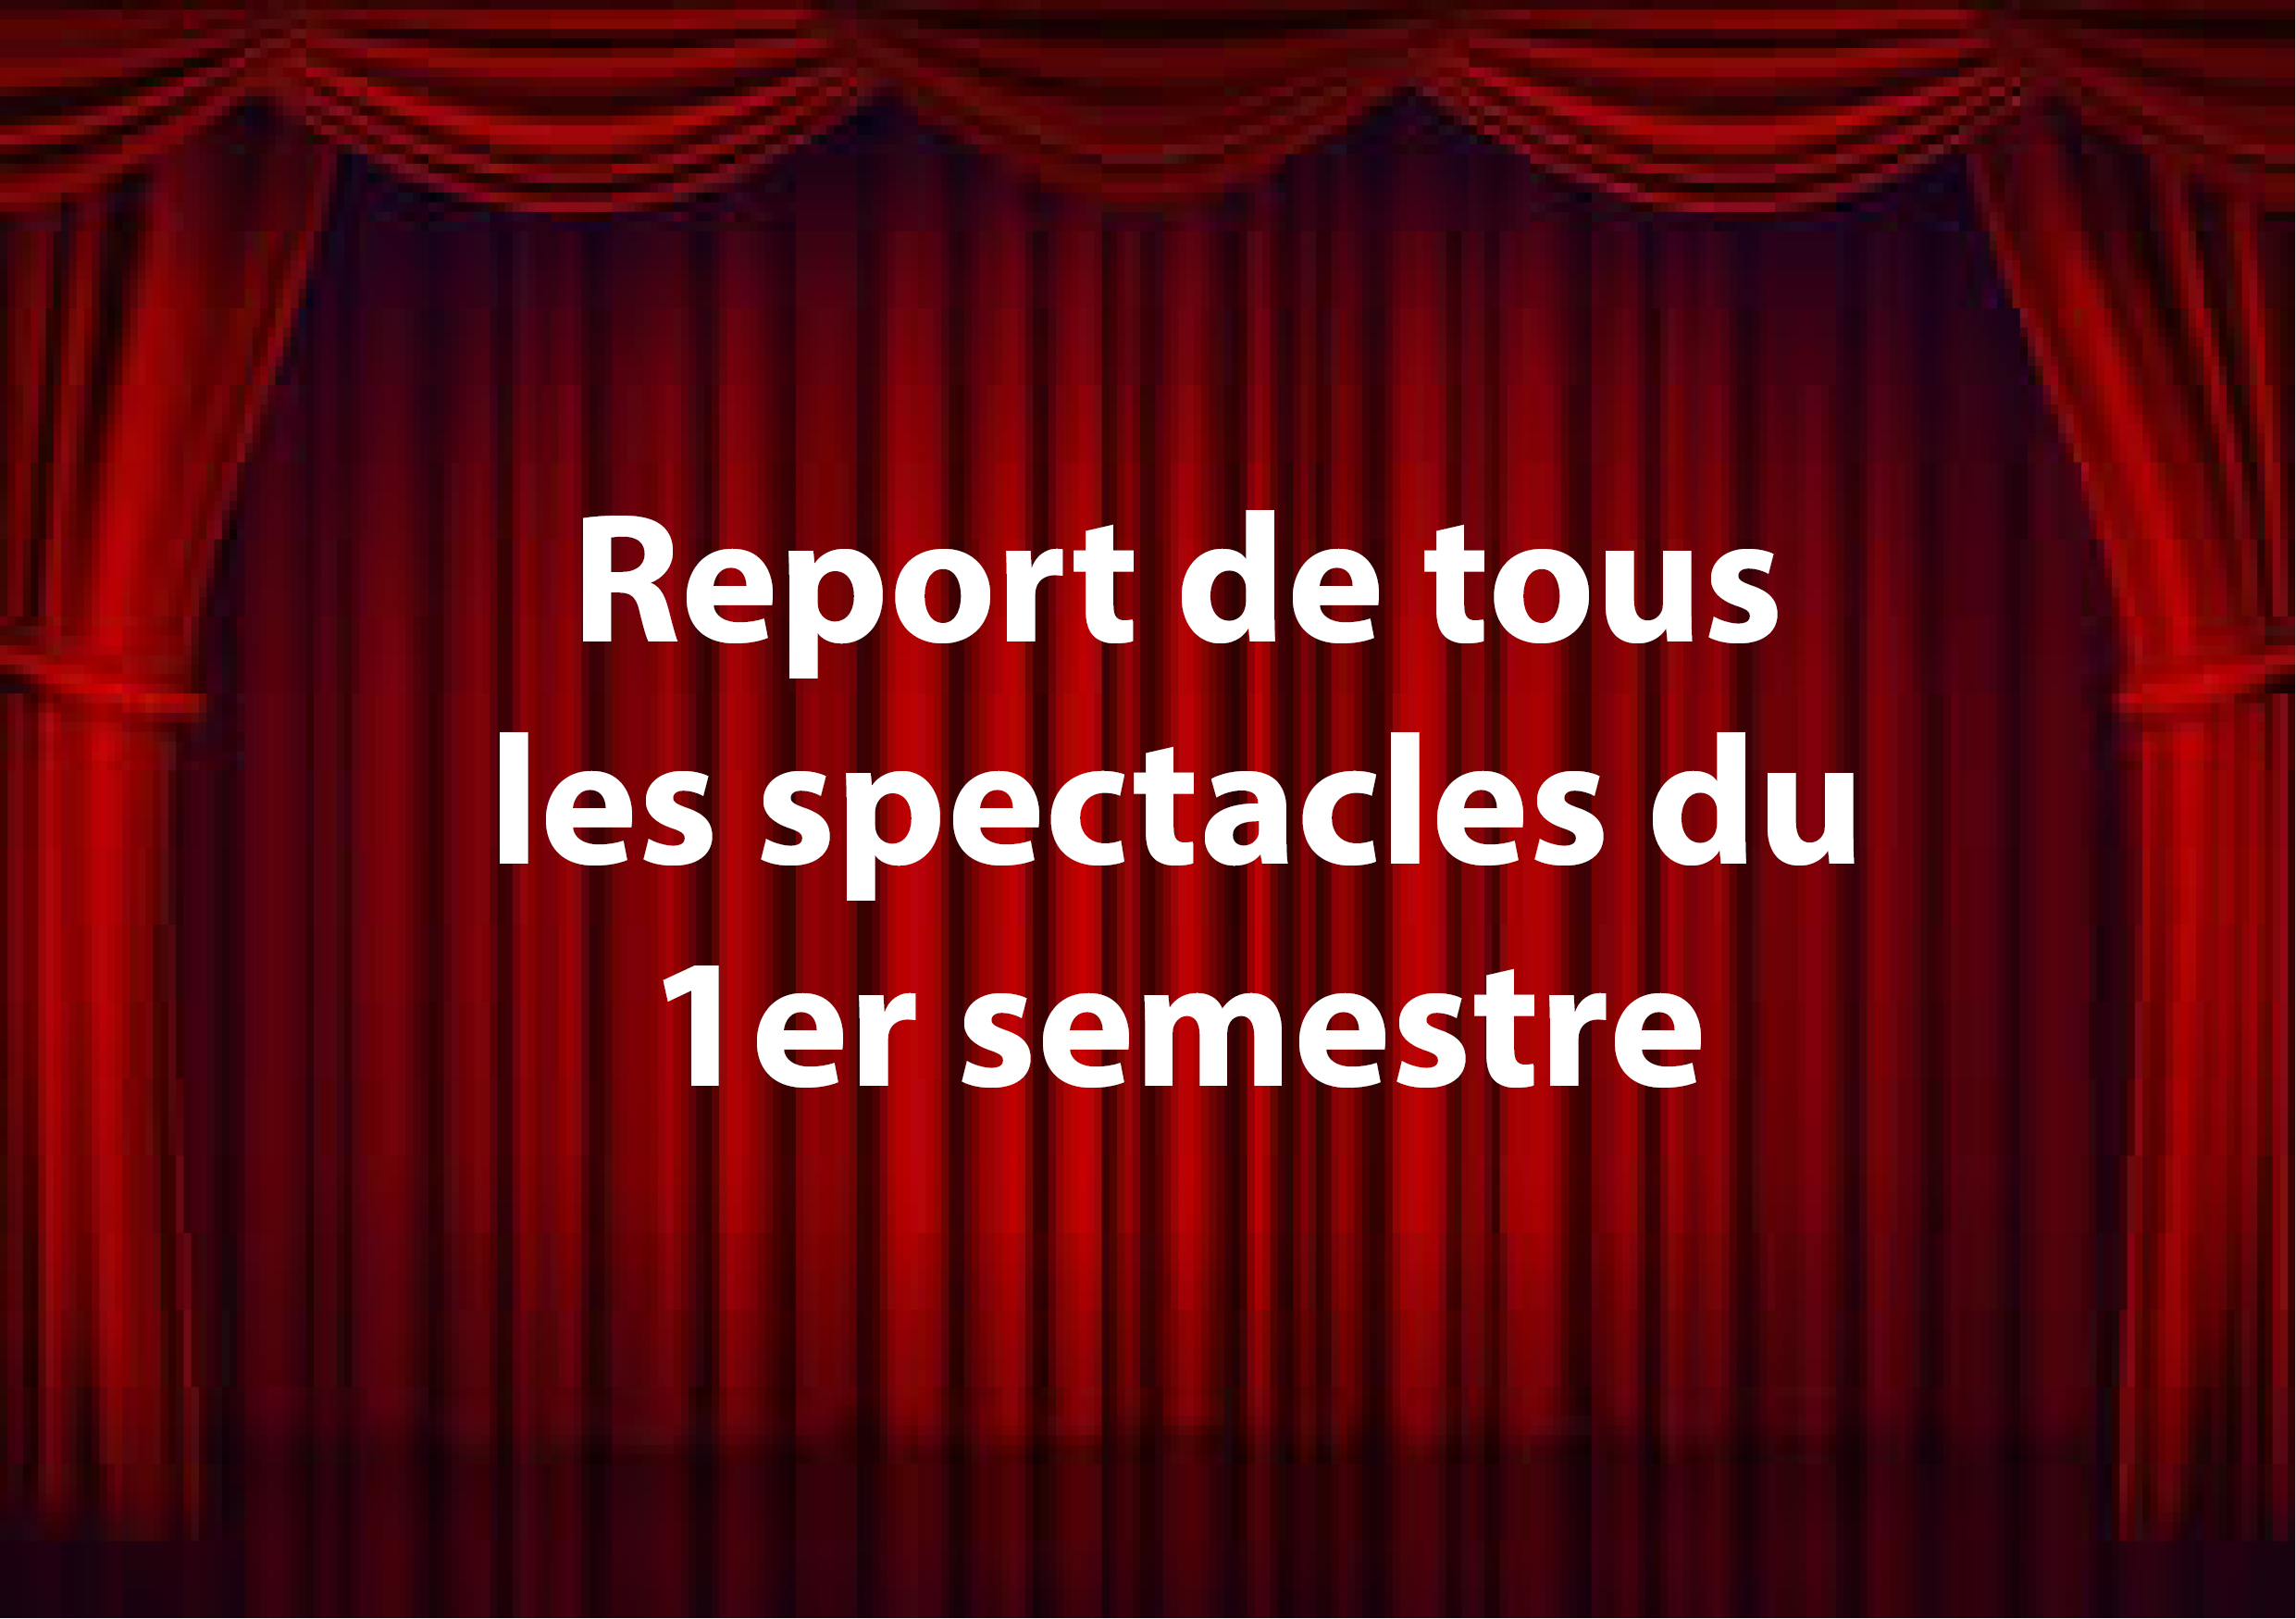 report des spectacles